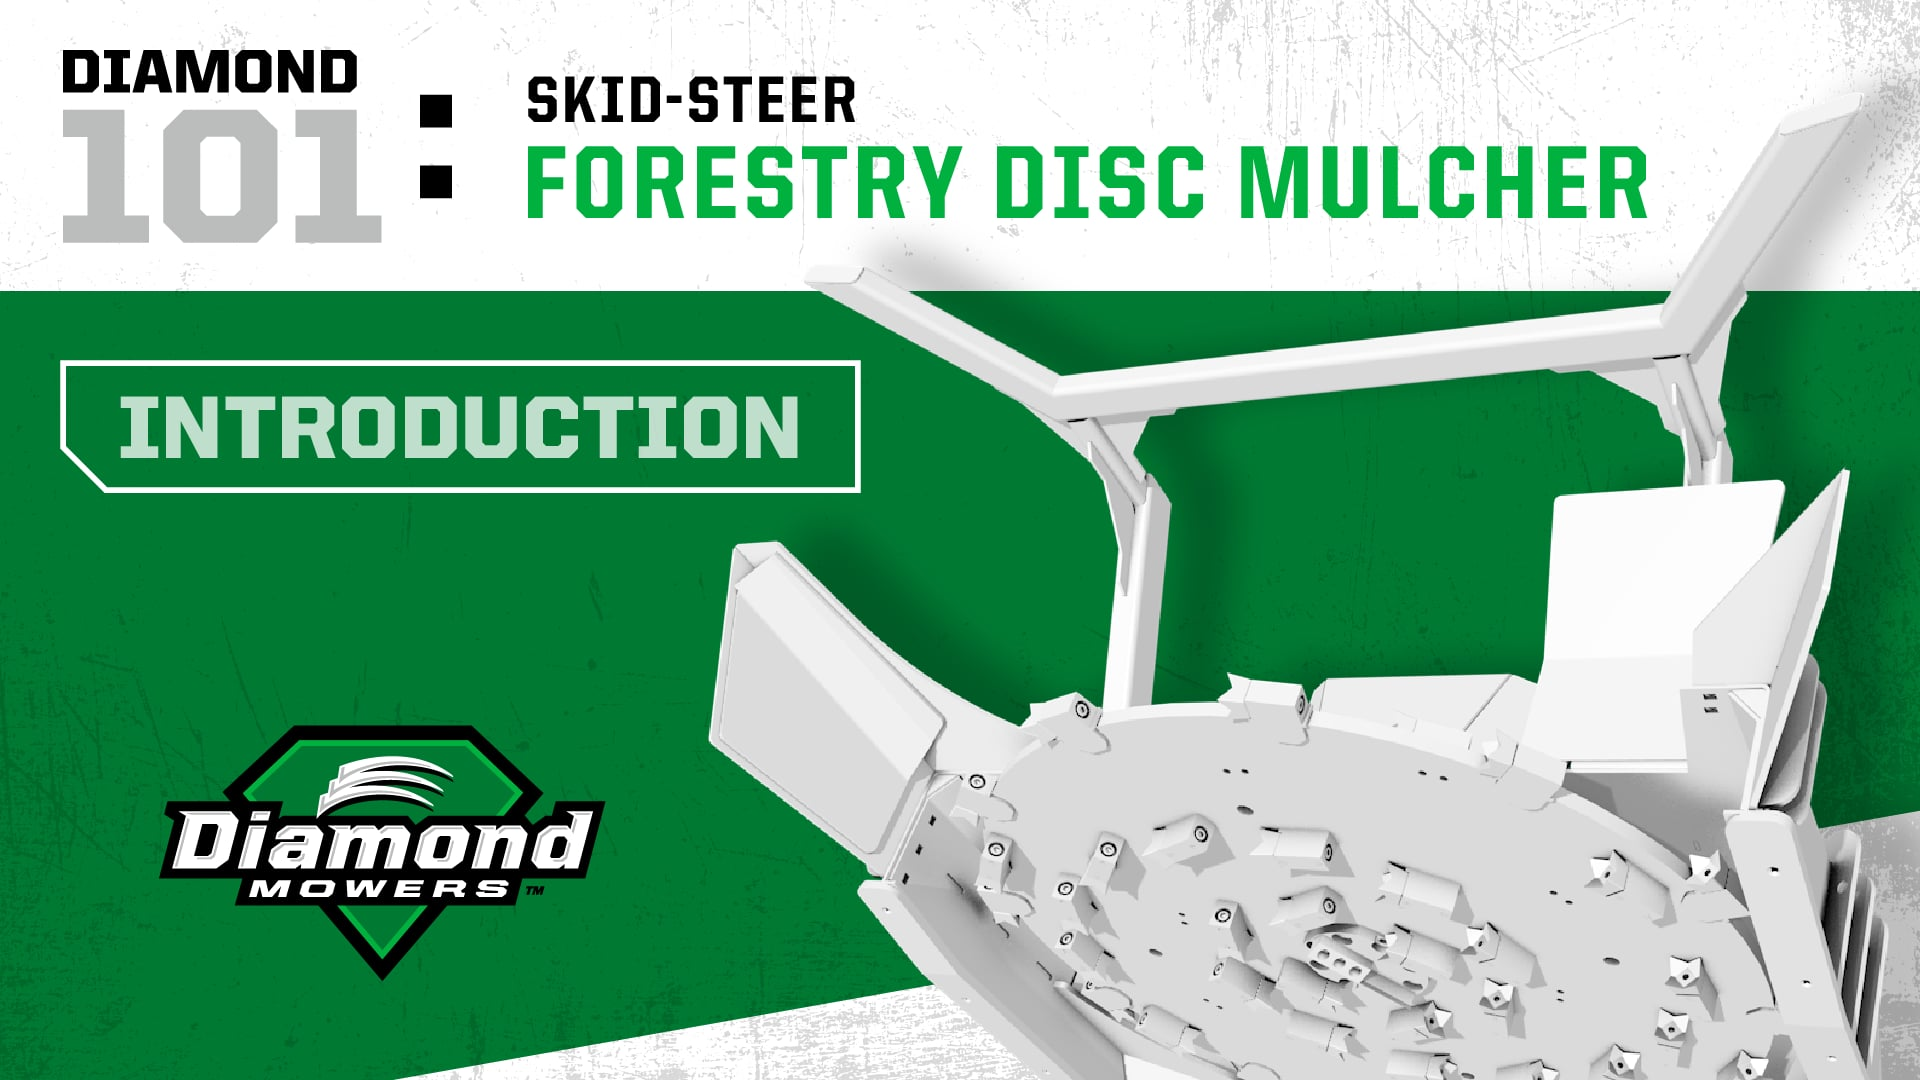 Skid-Steer Forestry Disc Mulcher - Introduction